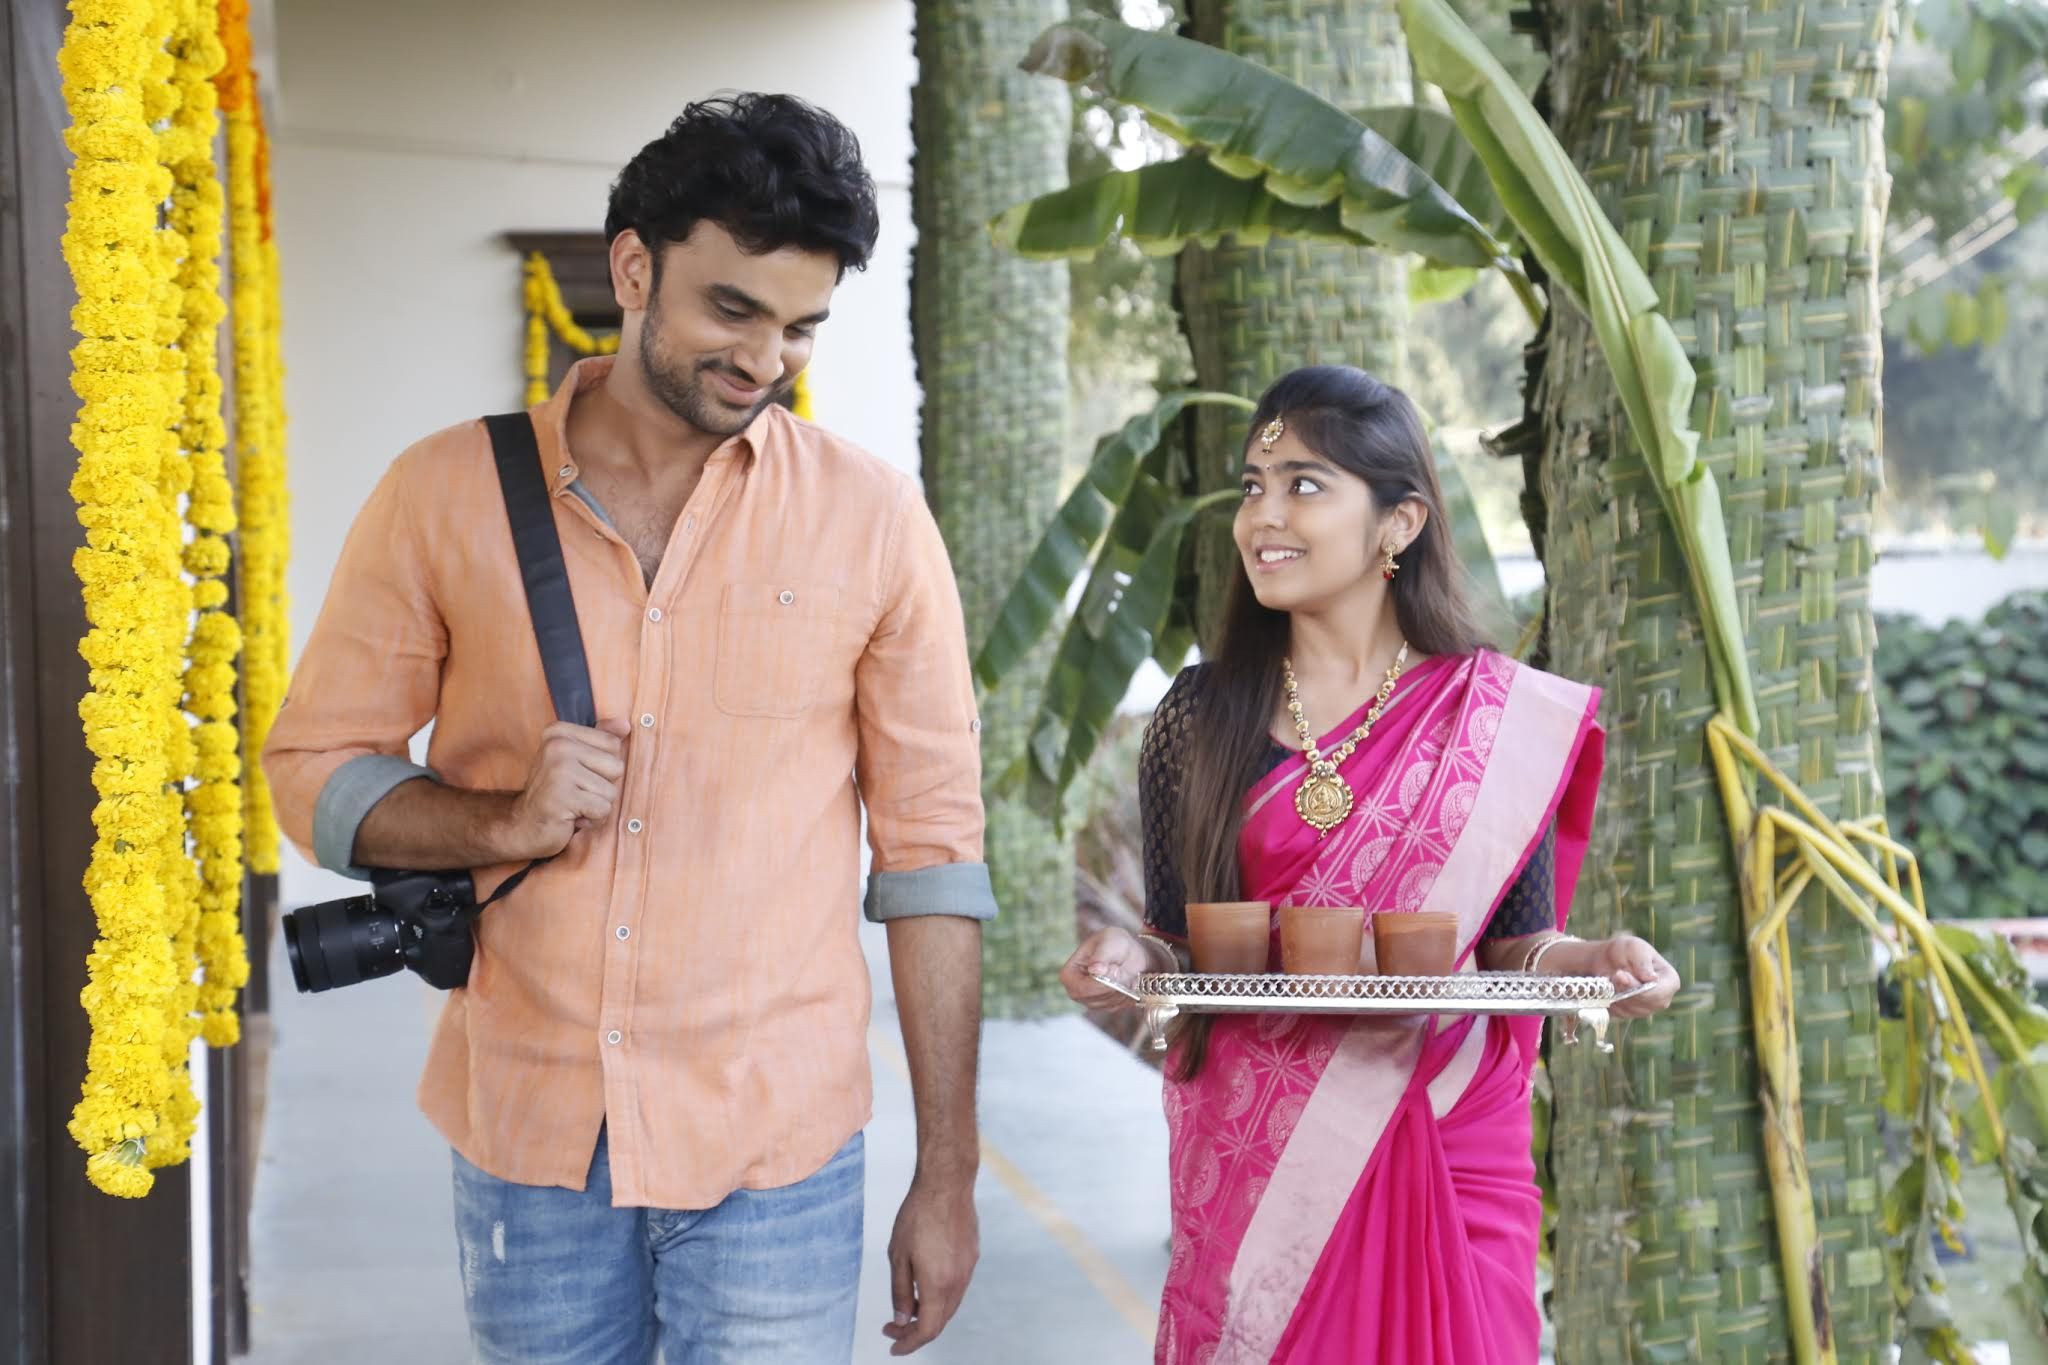 Rakesh Varre, Gargeyi Yellapragada in Evvarikee Cheppoddu Movie Stills